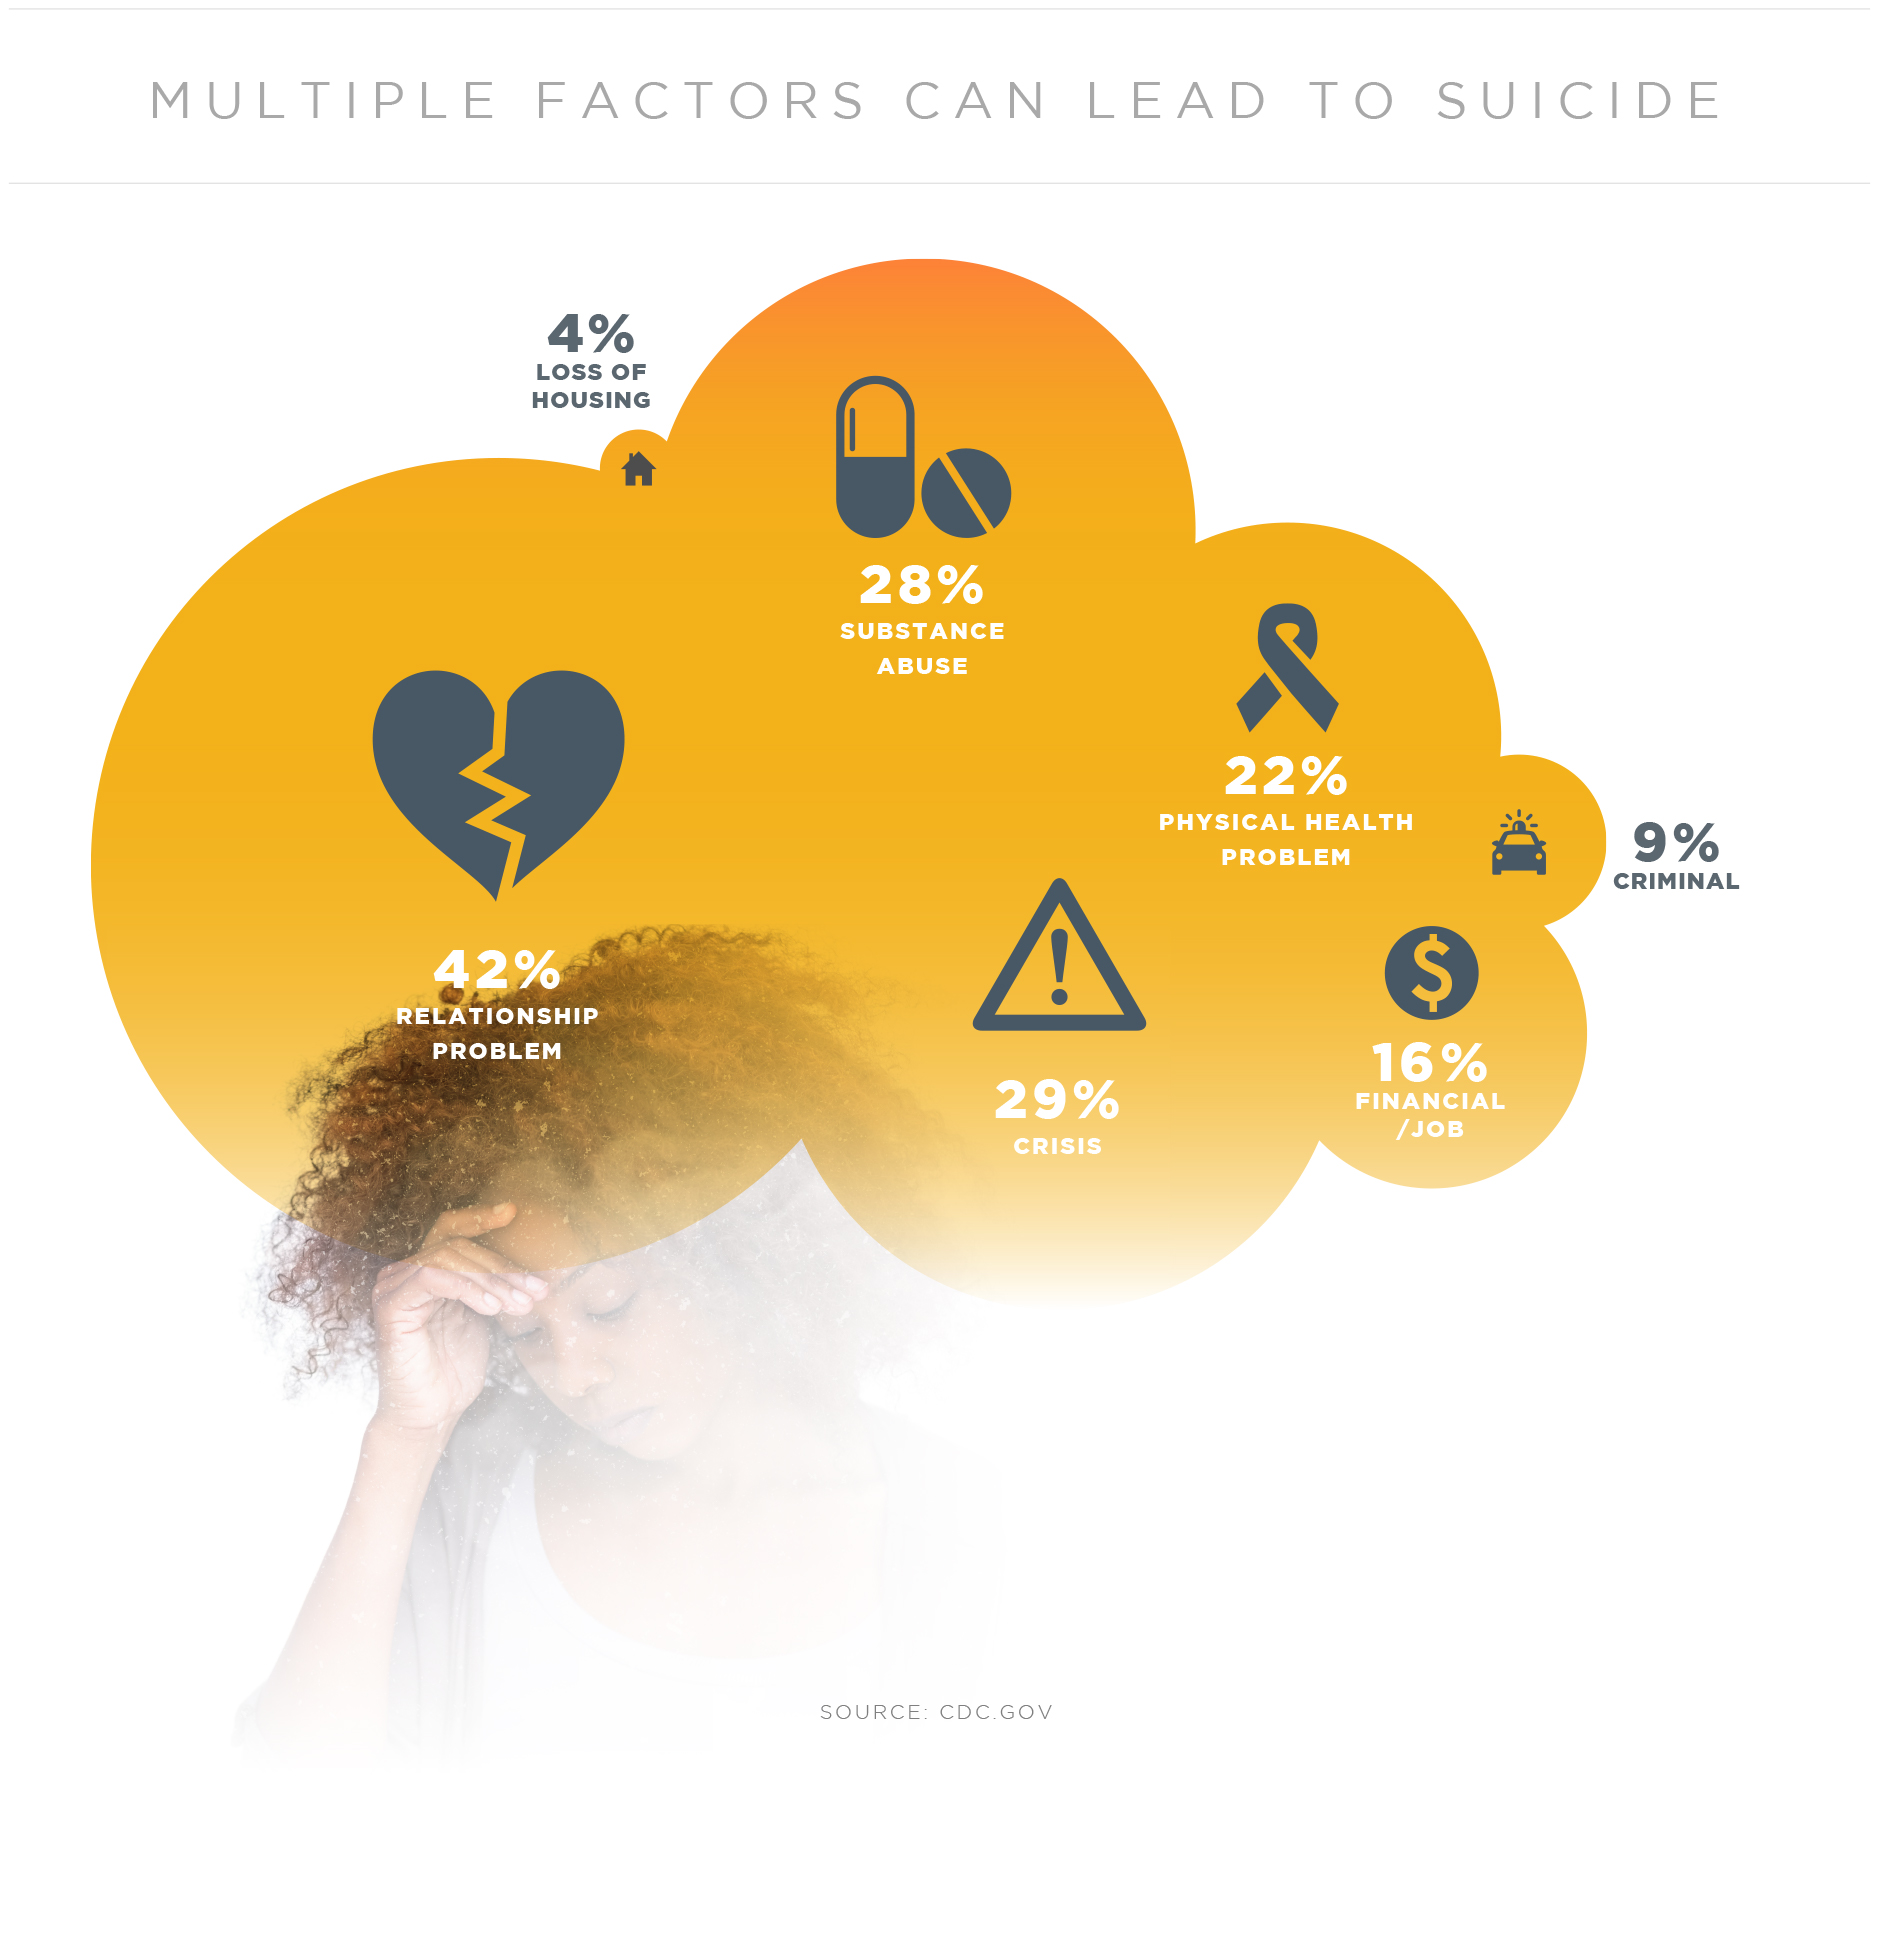 Infographic showing factors that can lead a person to suicide